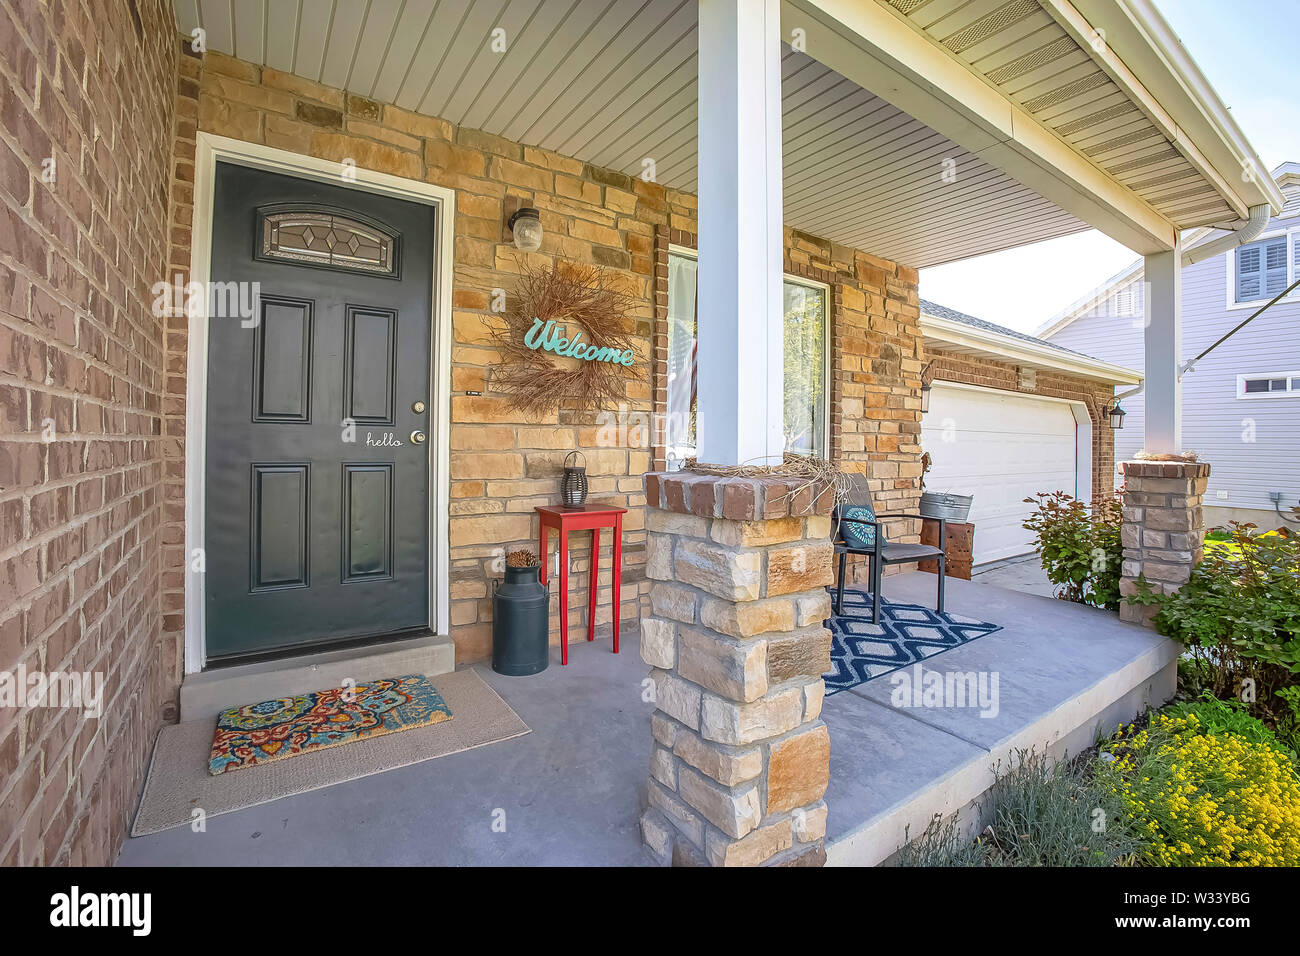 Gl paned front door and stone brick exterior wall at the ... on front of house storage, front of house trees, front of house landscaping, front of house awards, front of house signs, front of house decor, front of house lighting,